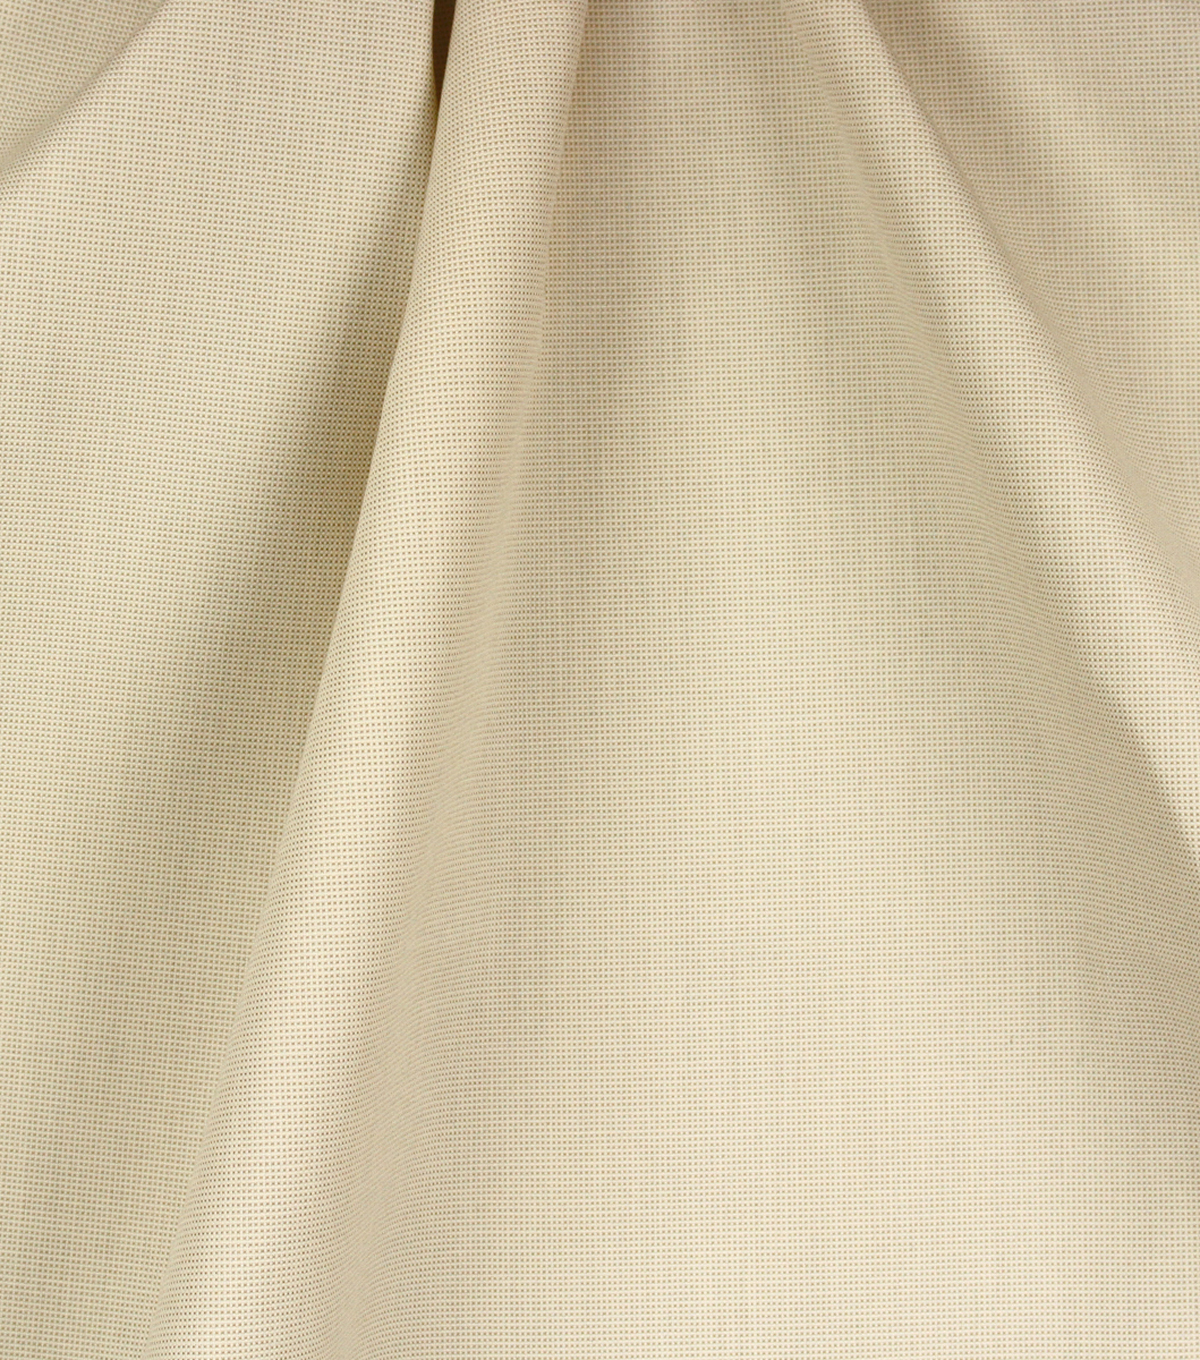 Optimum Performance Multi-Purpose Decor Fabric 54\u0027\u0027-Birch